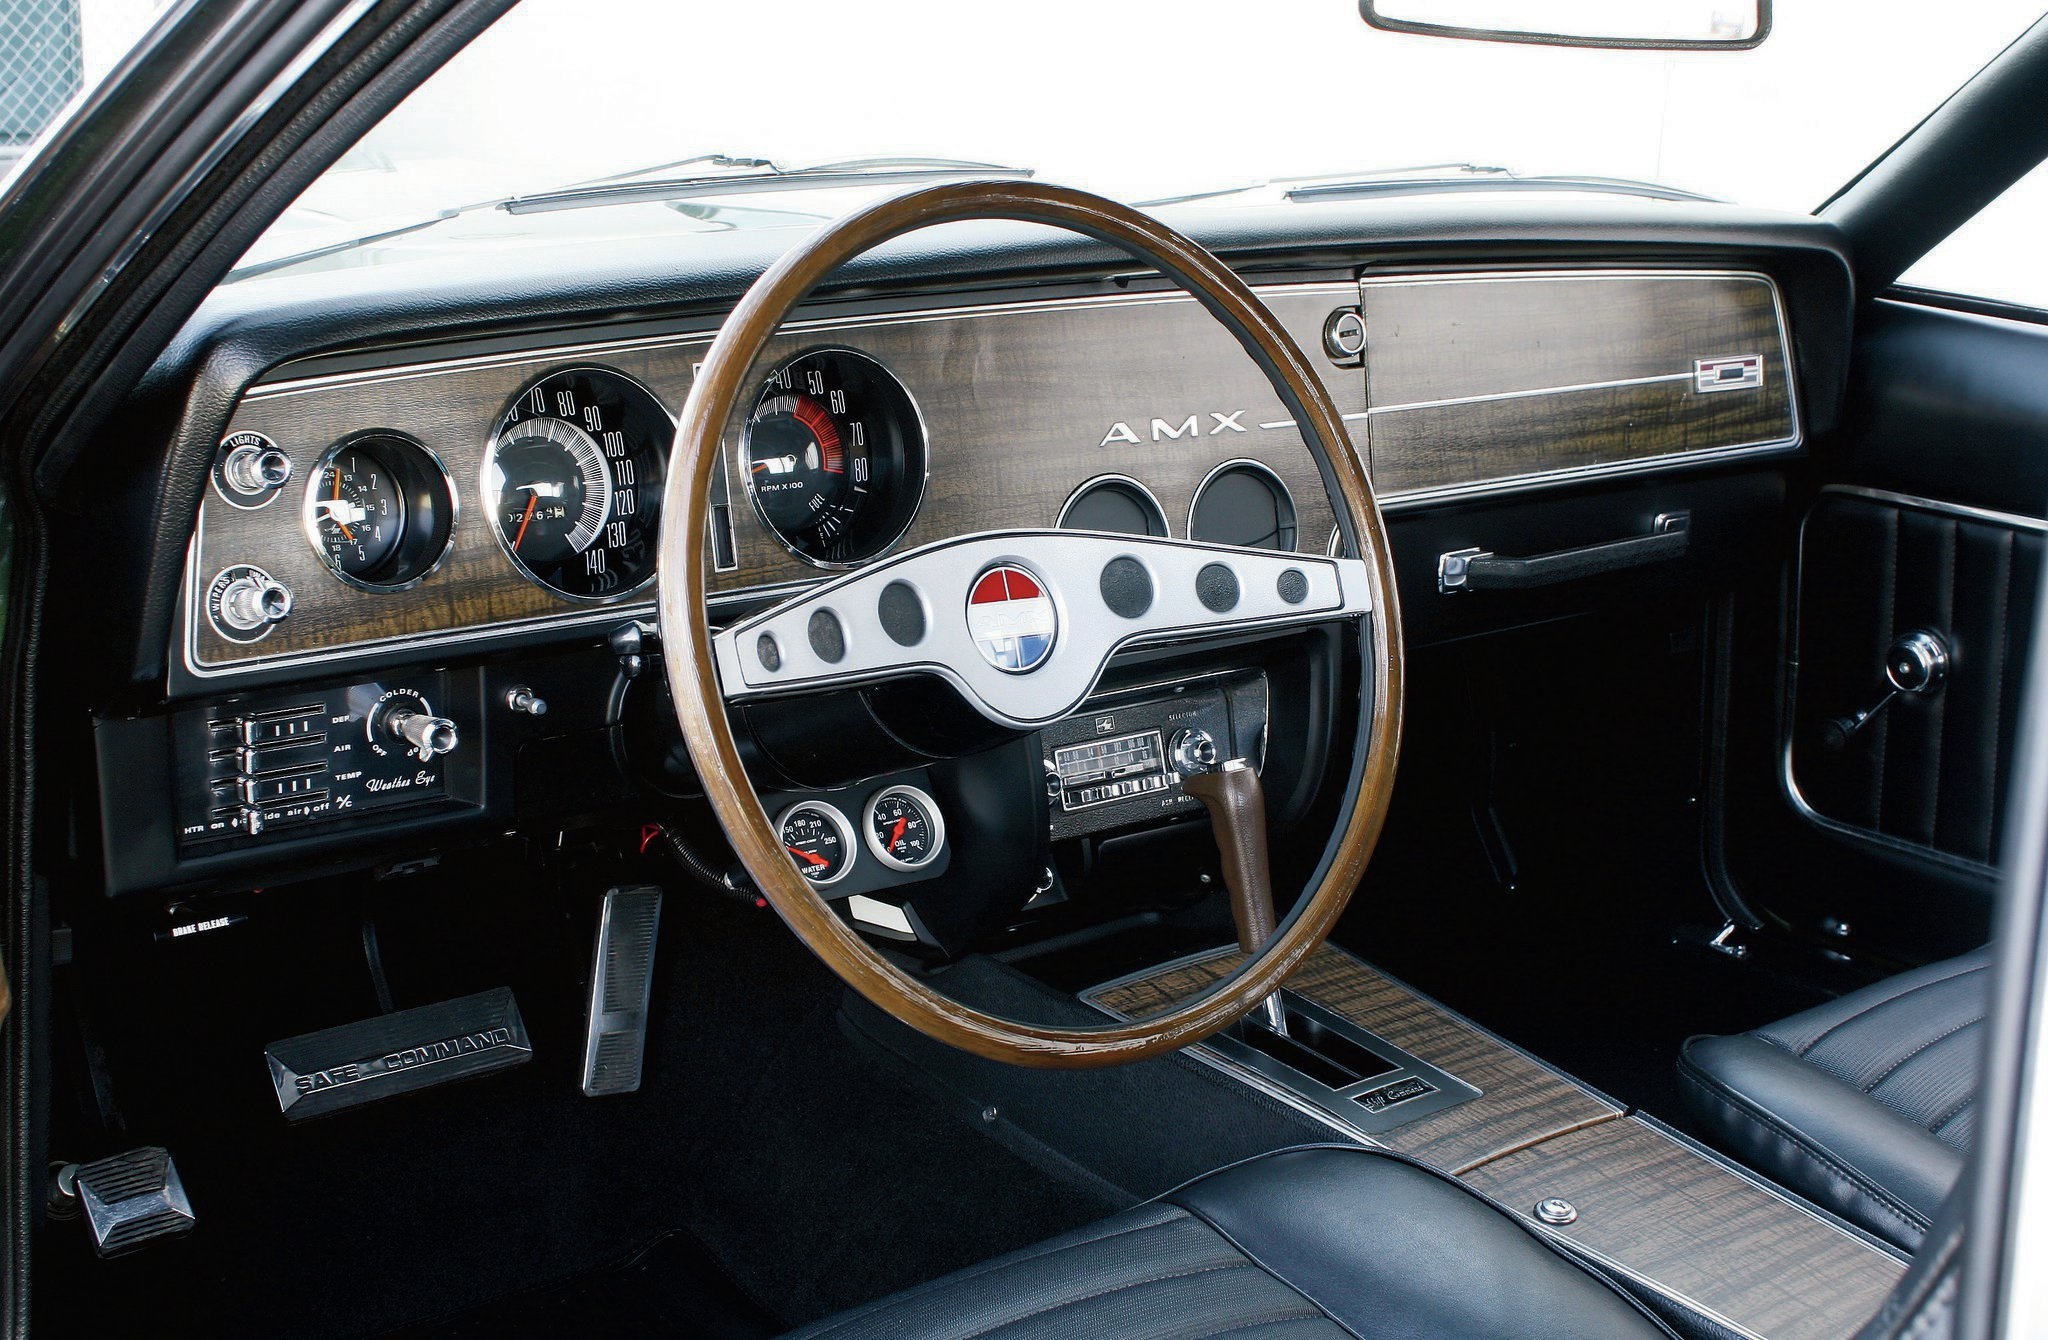 The two-spoke Rim-Blow wheel was new for 1970, which Tony had restored by The Rimblow Buddy in Glendale, Arizona.